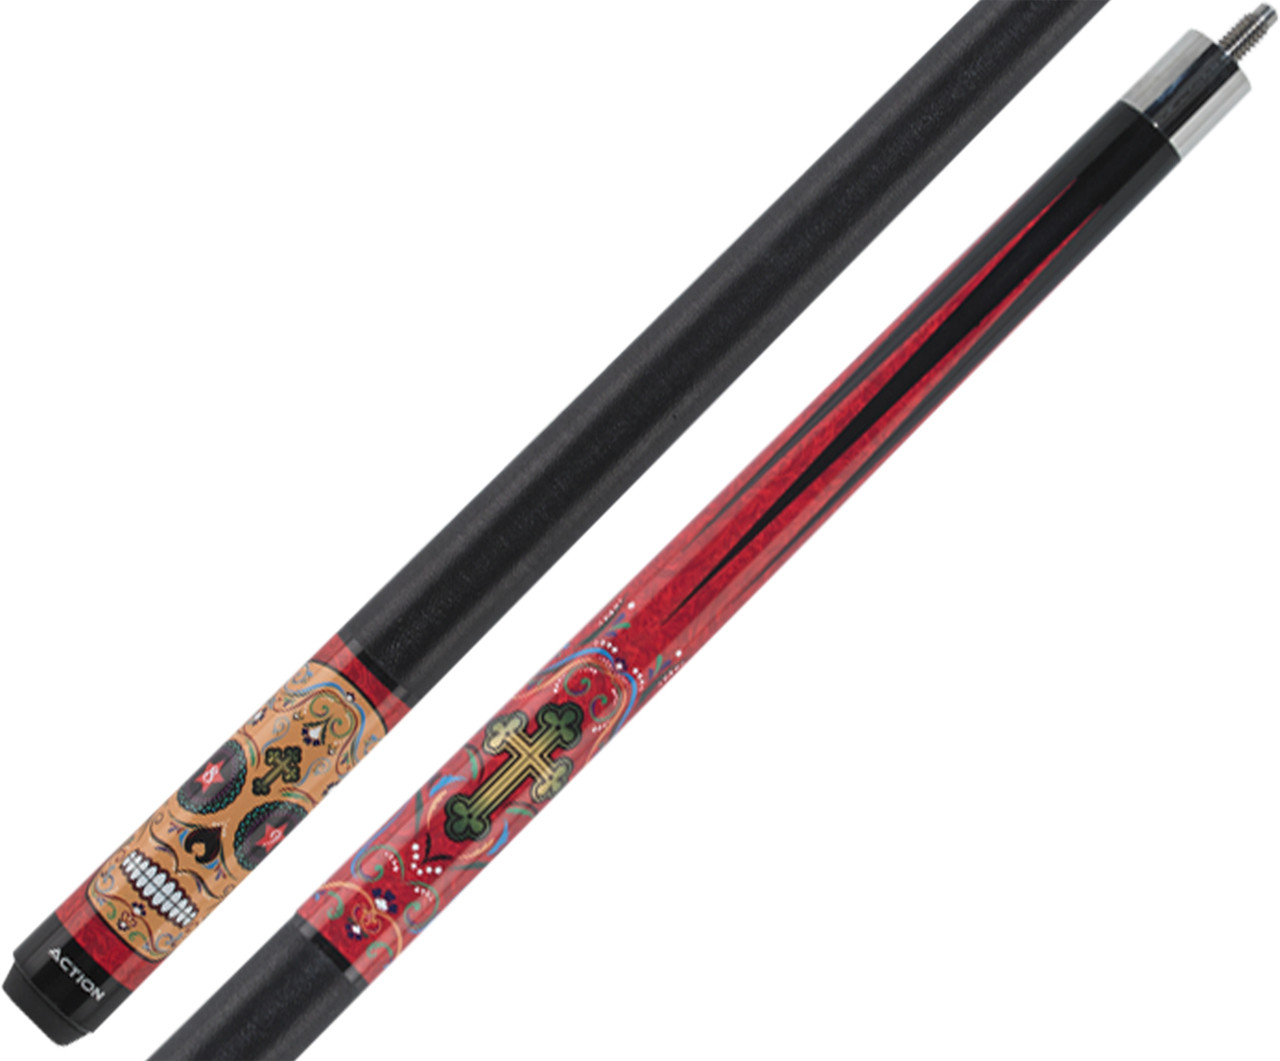 Action pool cue cal02 fci billiards - Action pool cue cases ...